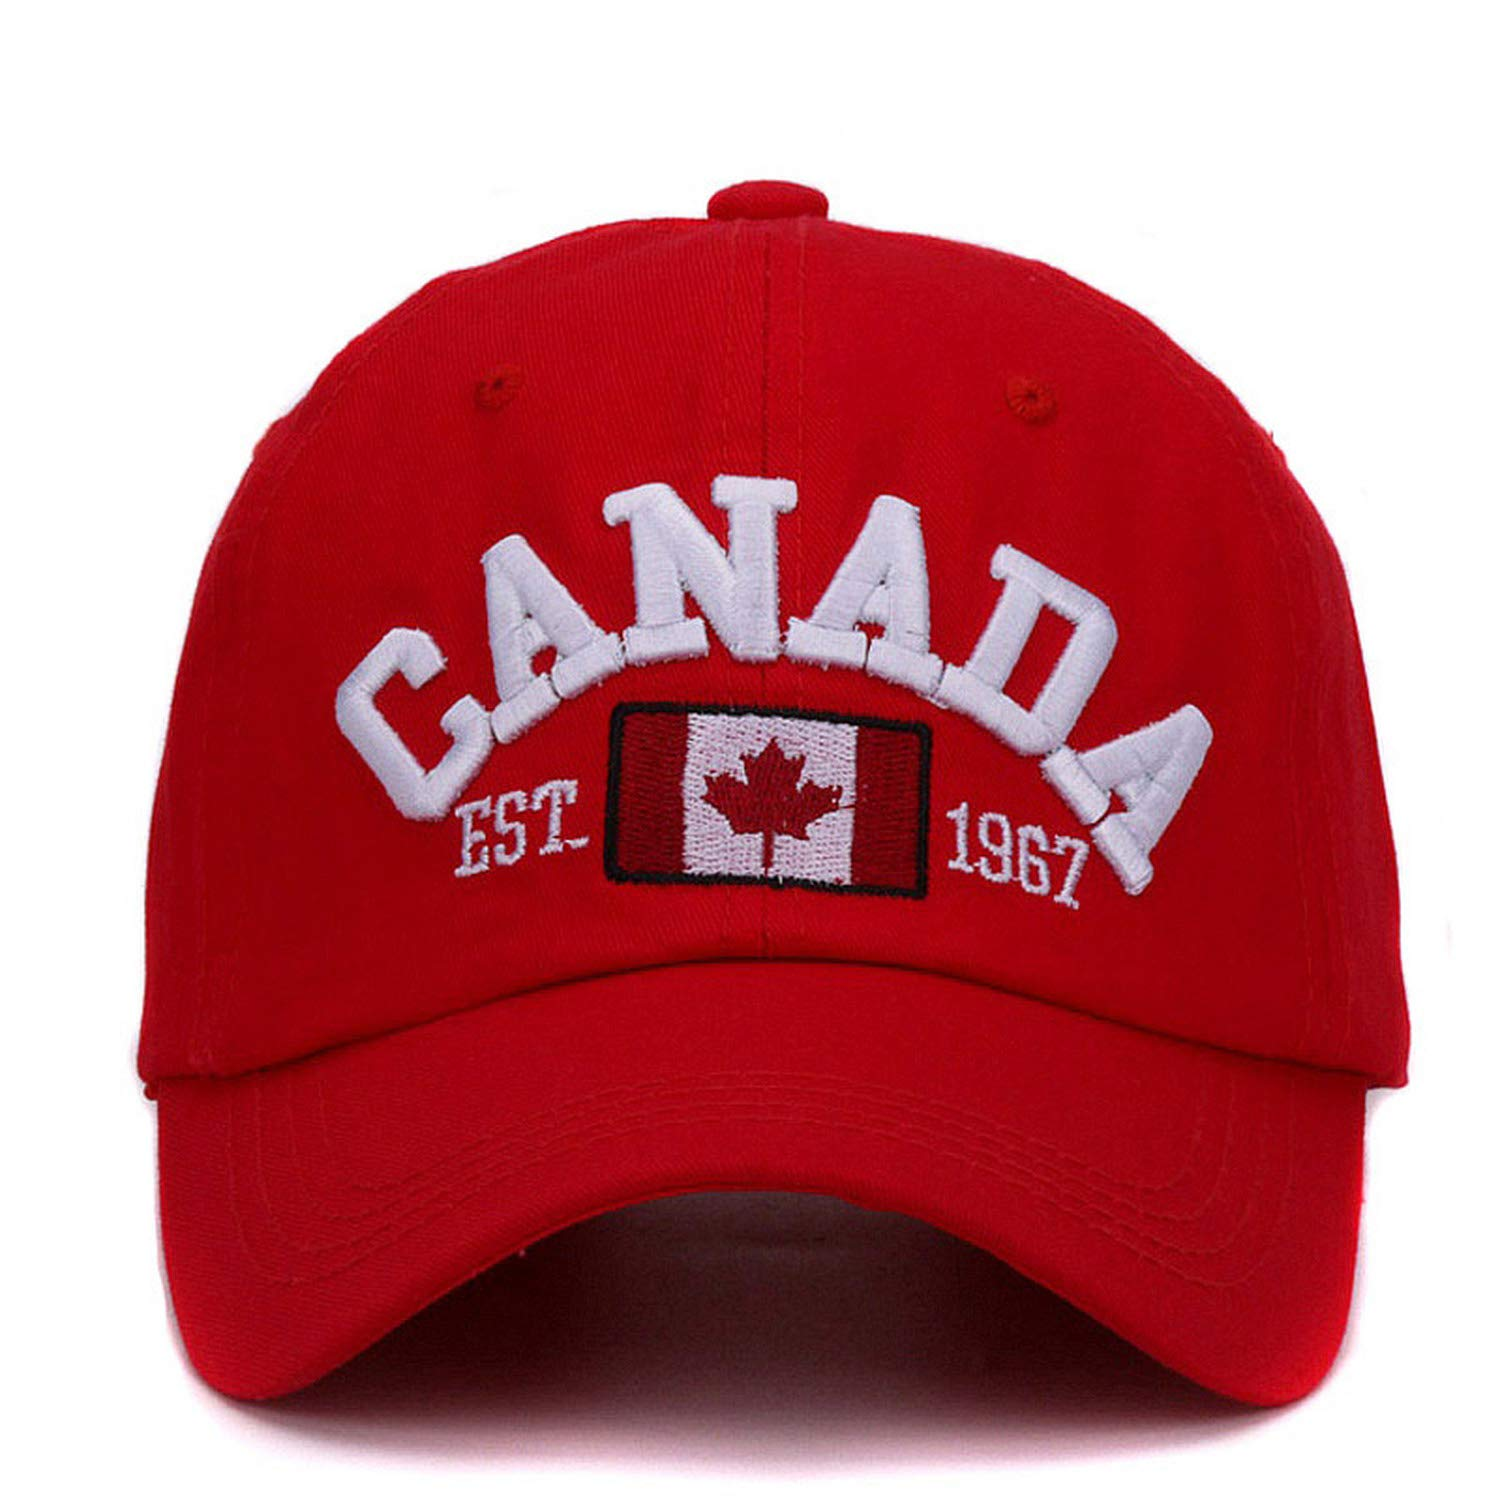 Feisette Canada Letter Embroidery Baseball caps Cotton Gorra Curved dad hat Leisure Outdoor Women Men Sports Cap